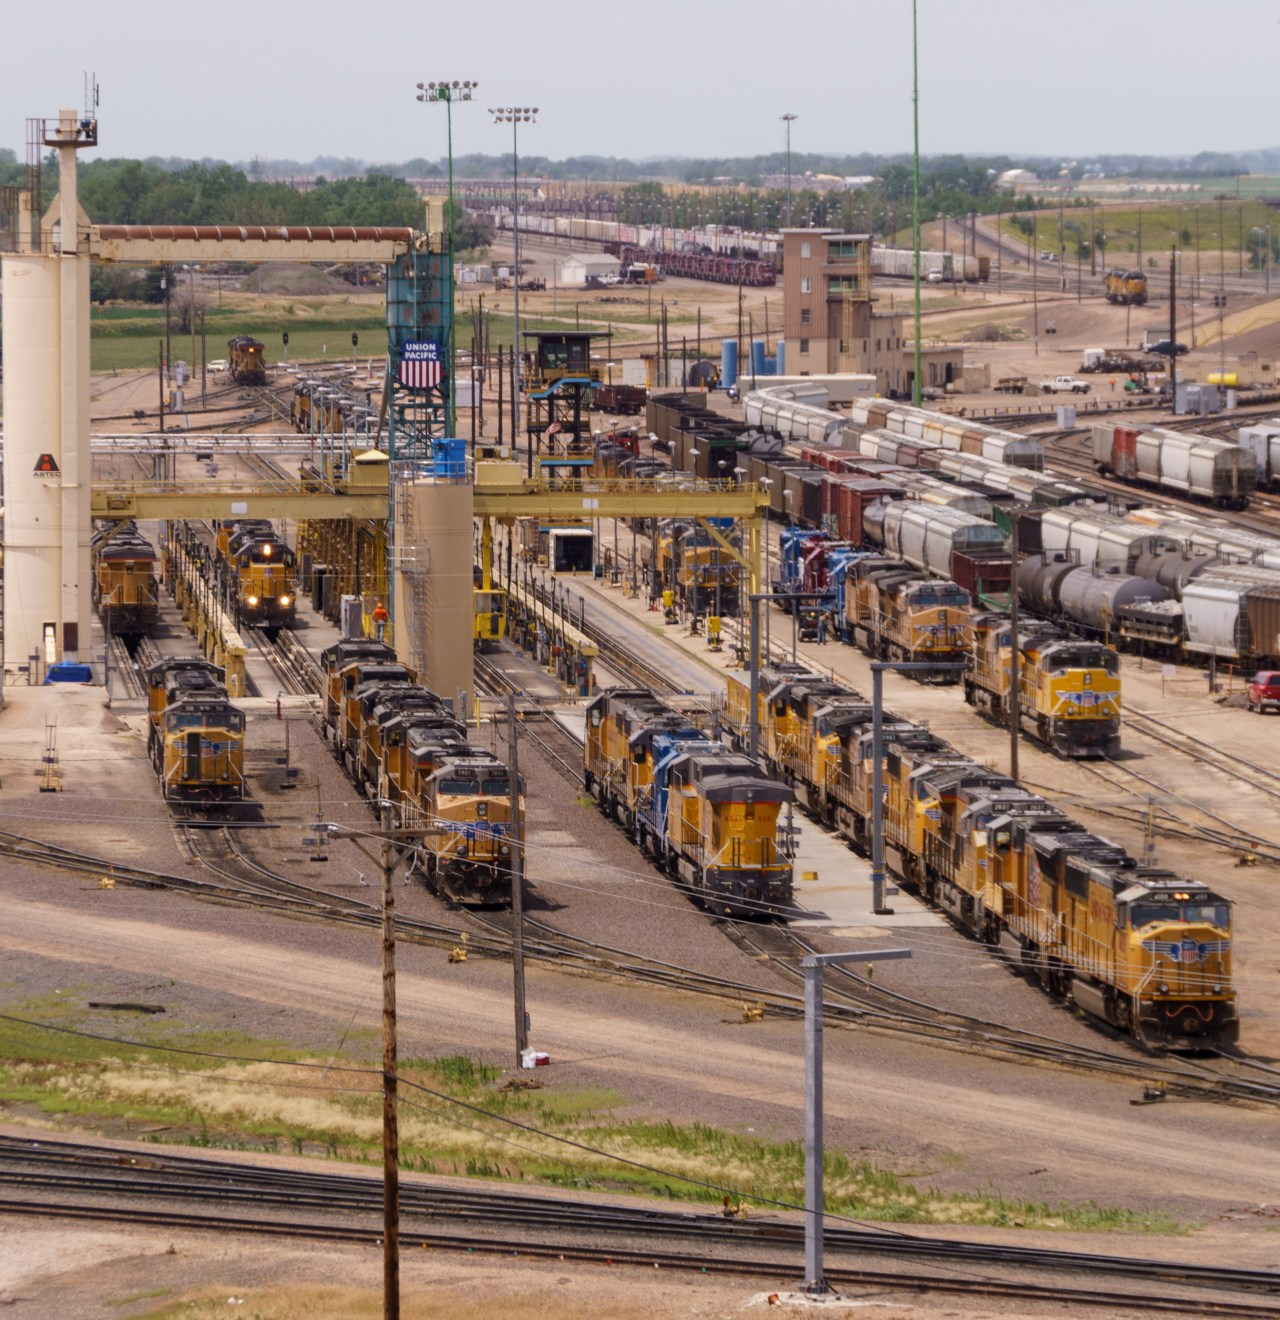 Locomotive prep area of the Union Pacific facility in North Platte, Nebraska